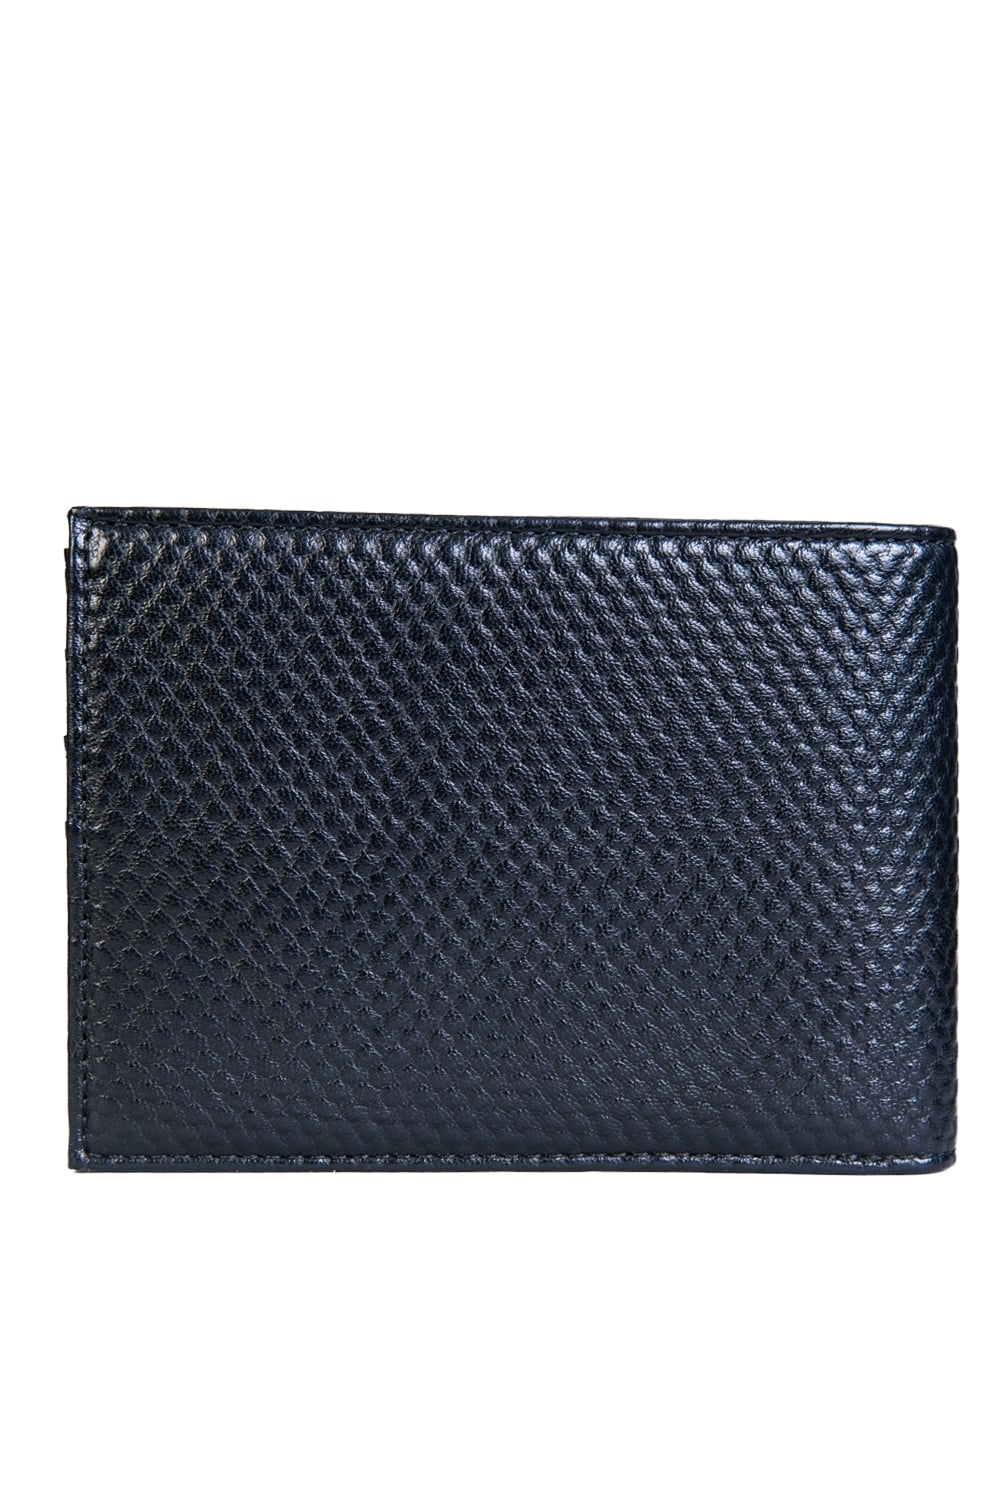 the best attitude 438d1 381f6 Armani Jeans Wallet Bifold 10 Card Holder Slots 938012 7A941